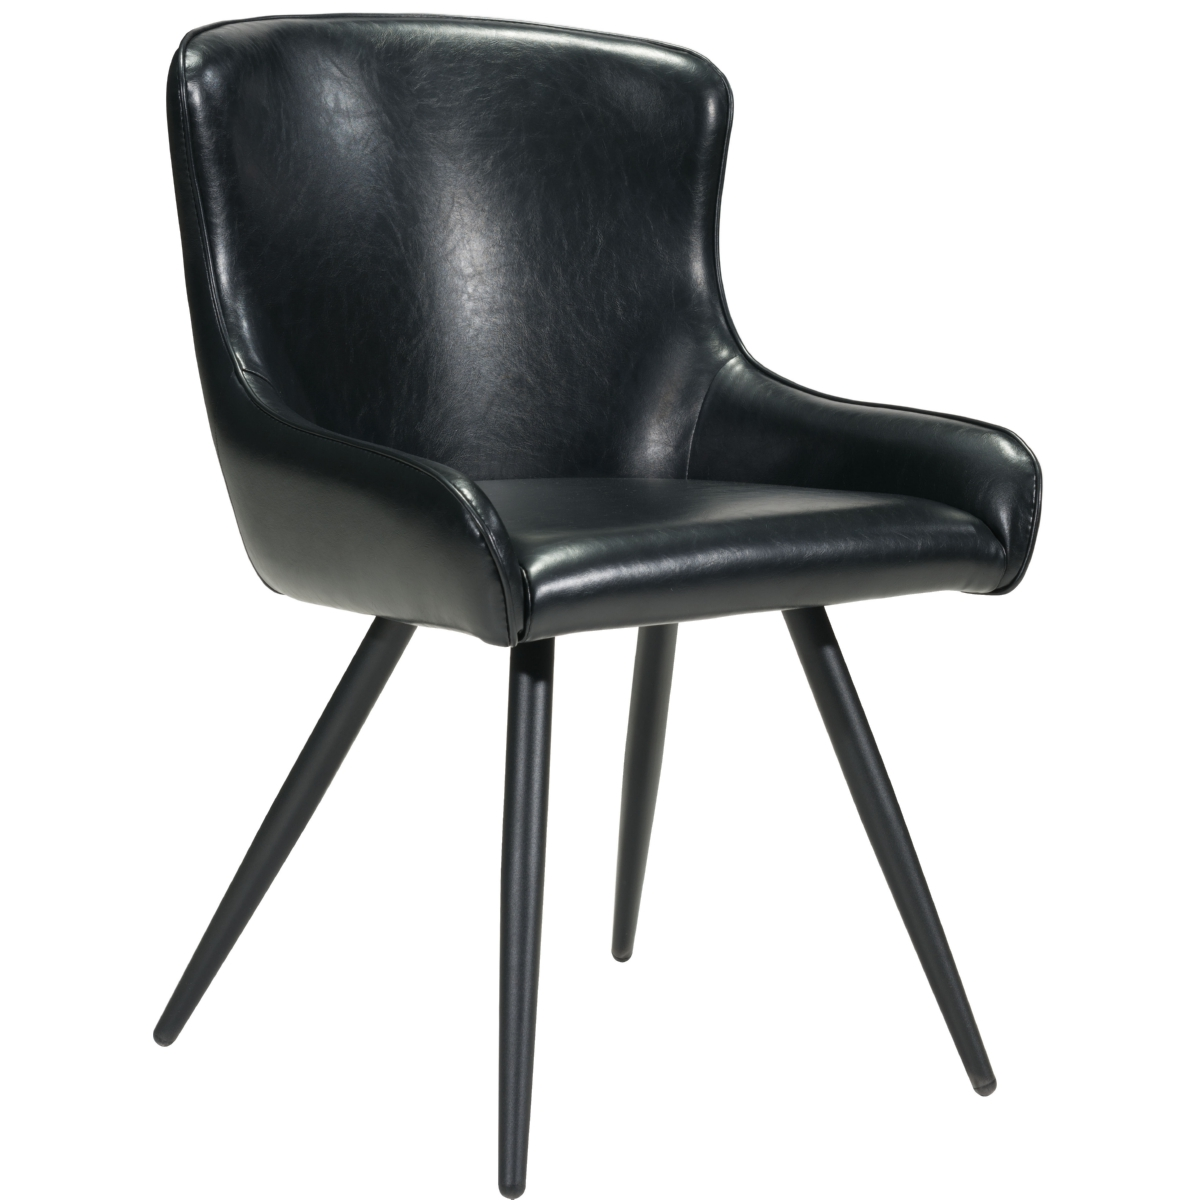 Aachen Dining Chair Mikaza Meubles Modernes Montreal